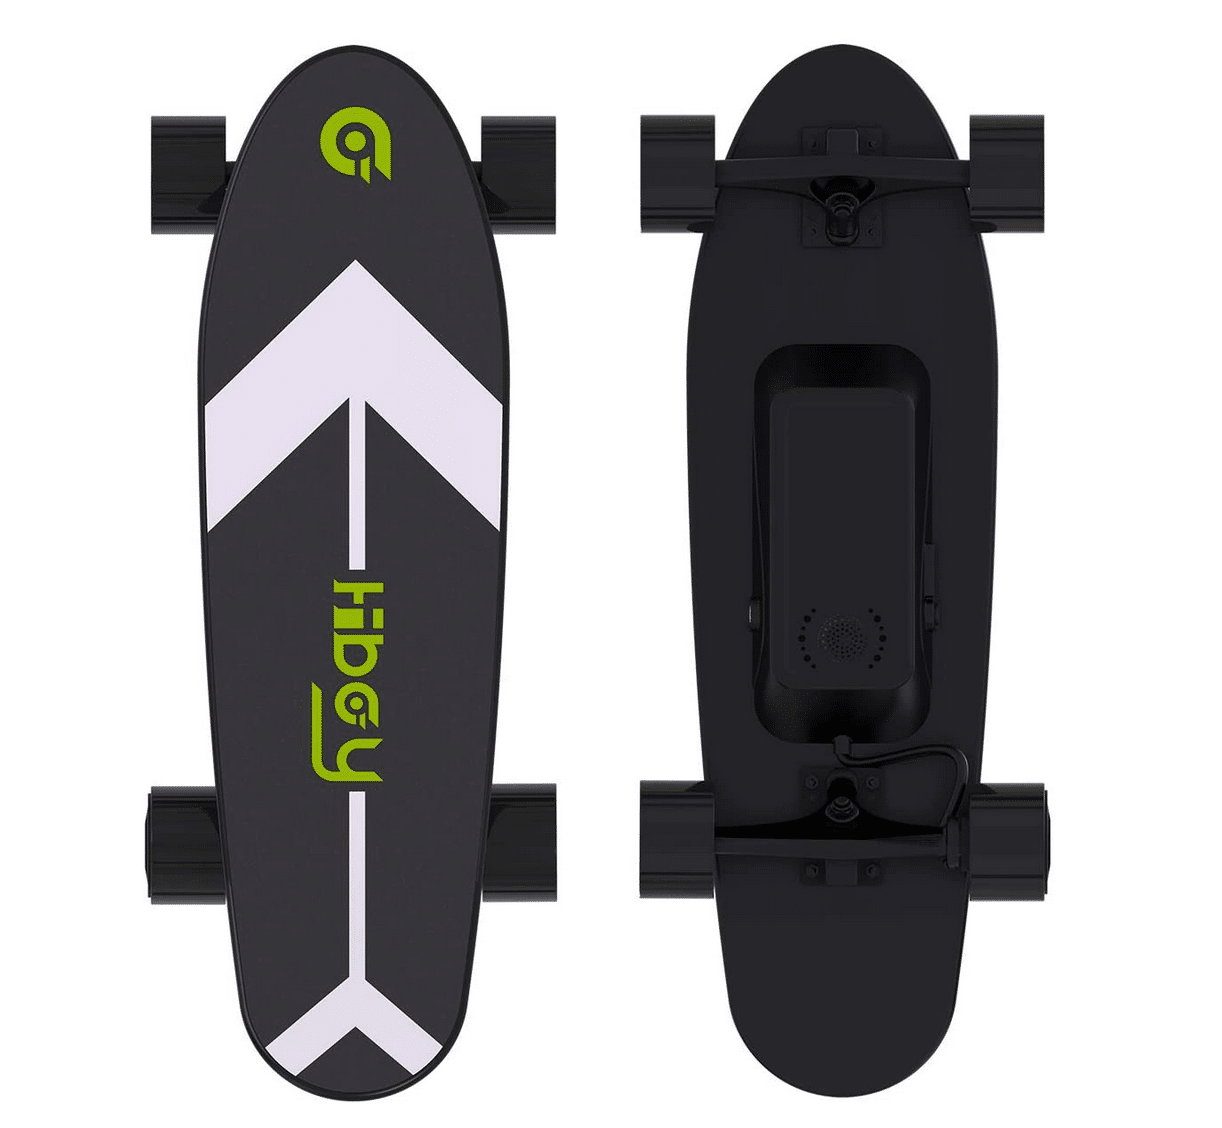 Hiboy S-11 Electric Skateboard